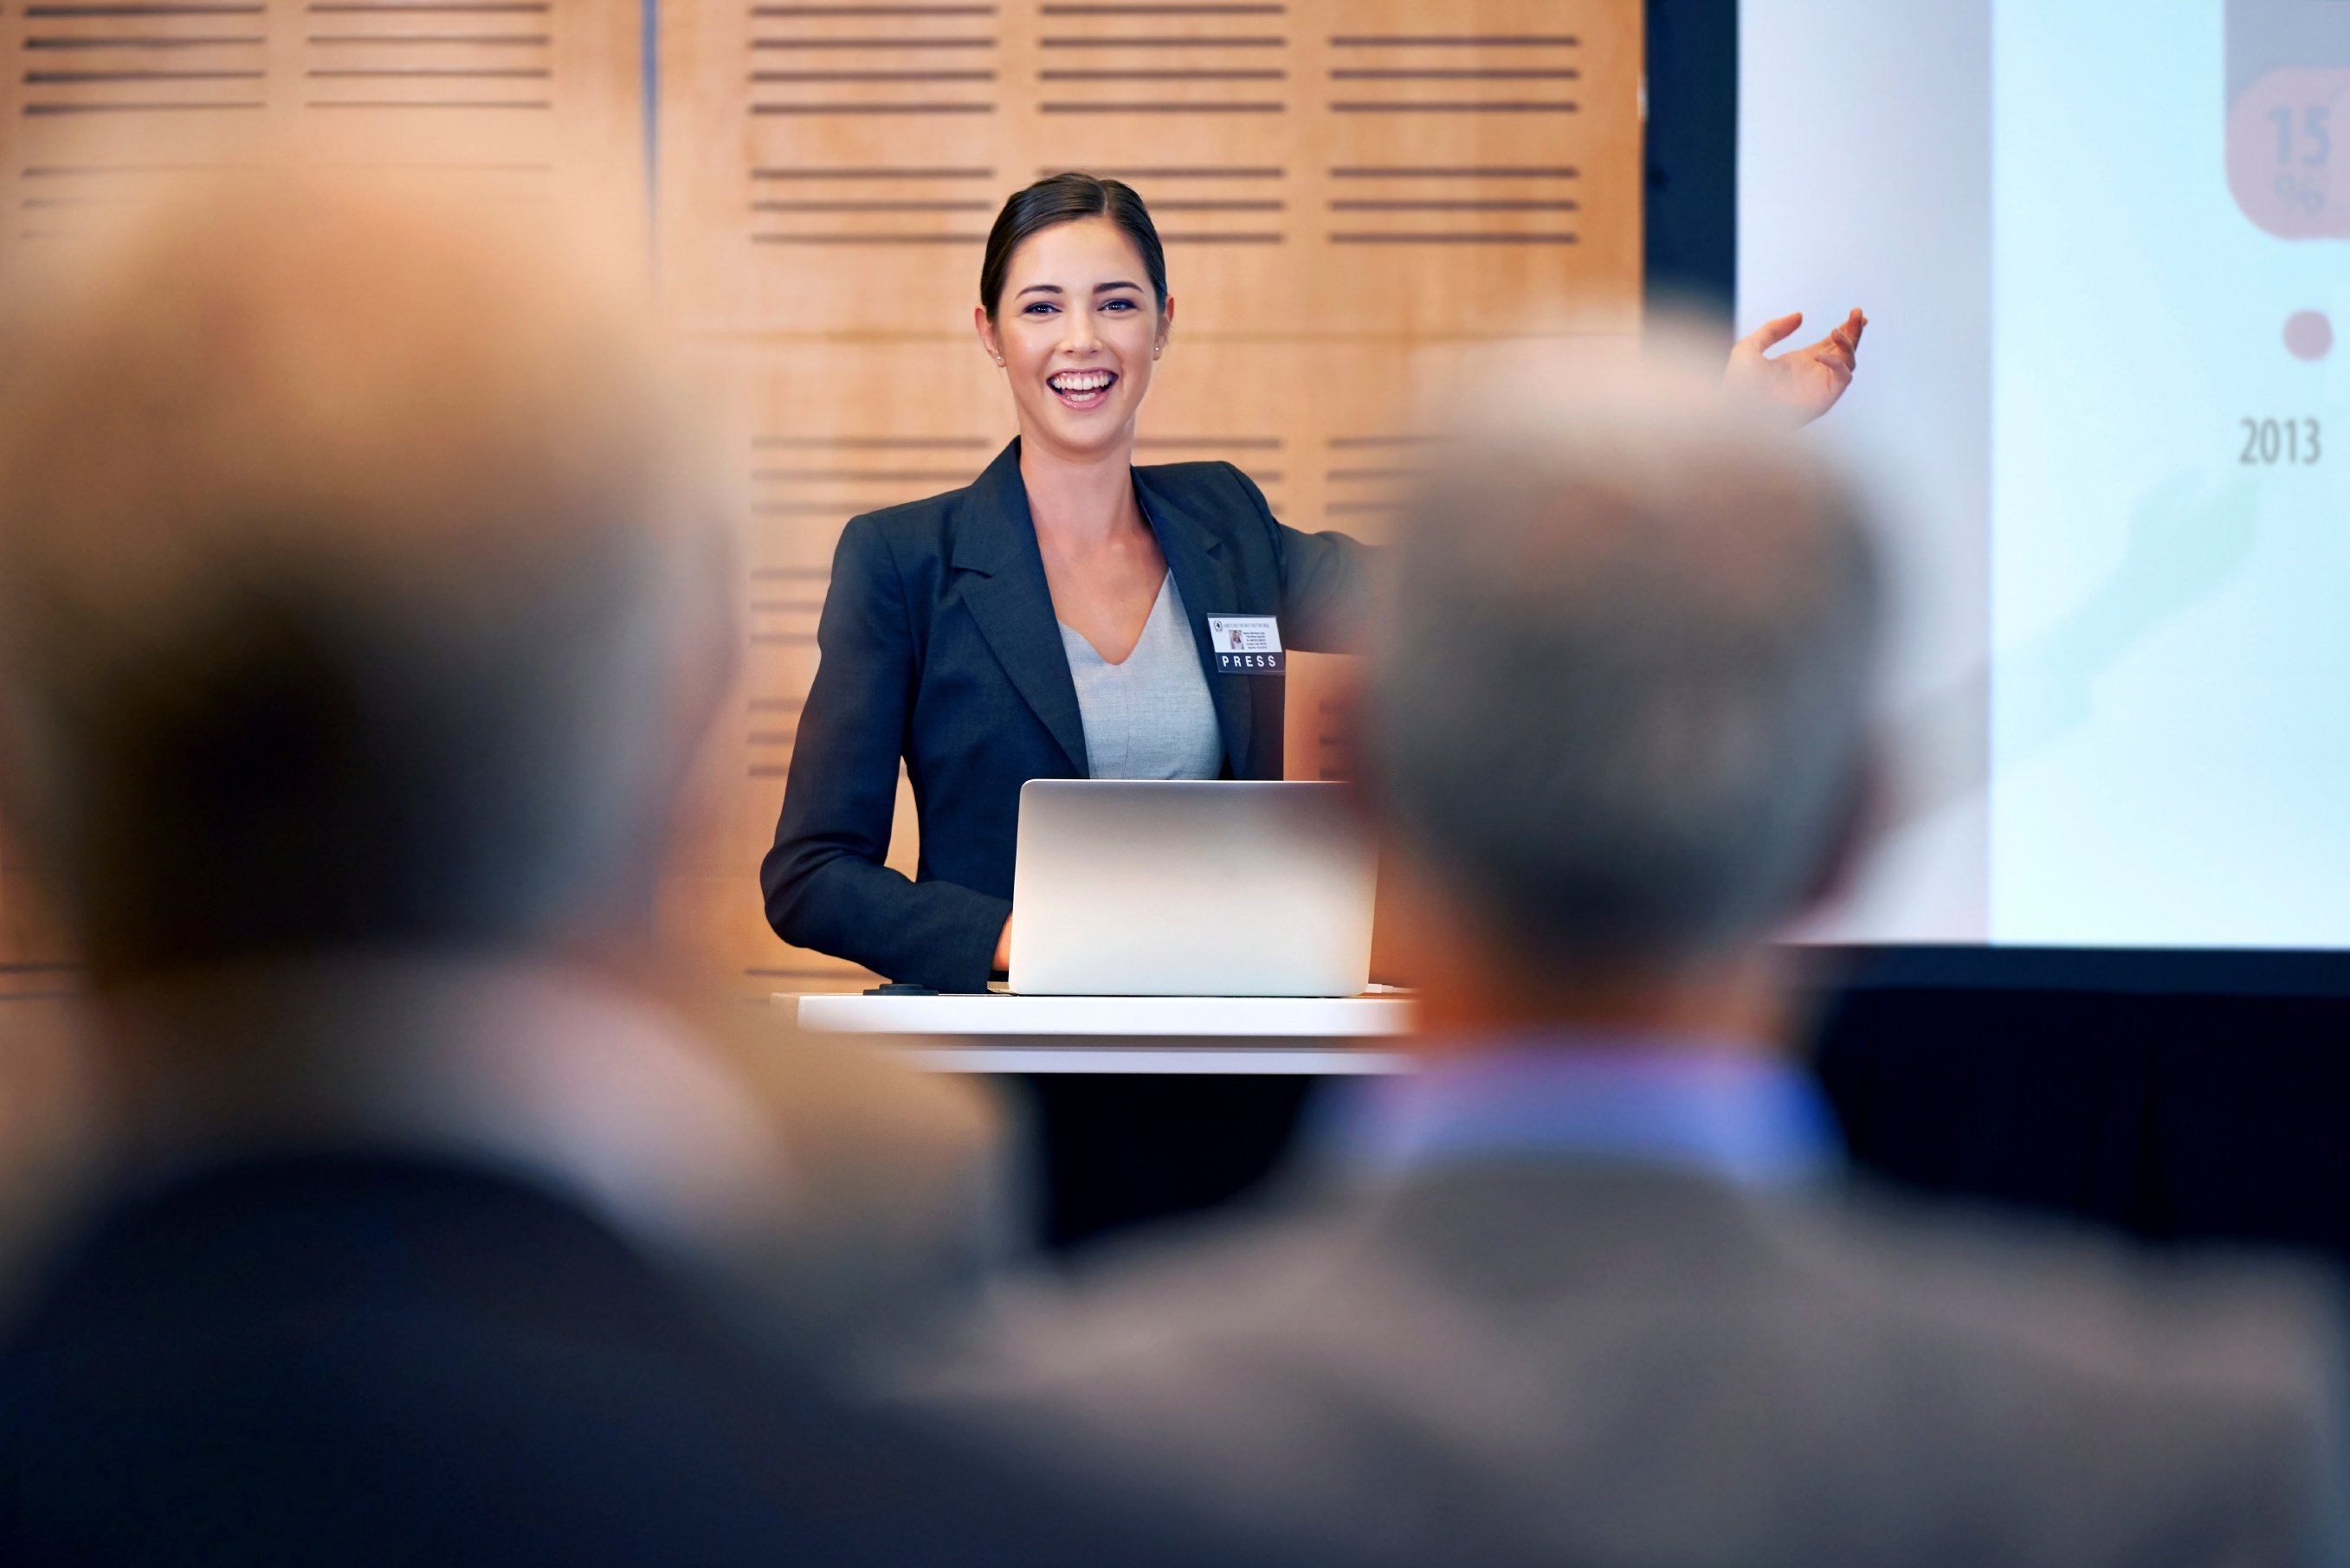 3 PowerPoint Tools That Will Keep Your Presentations Looking Sharp